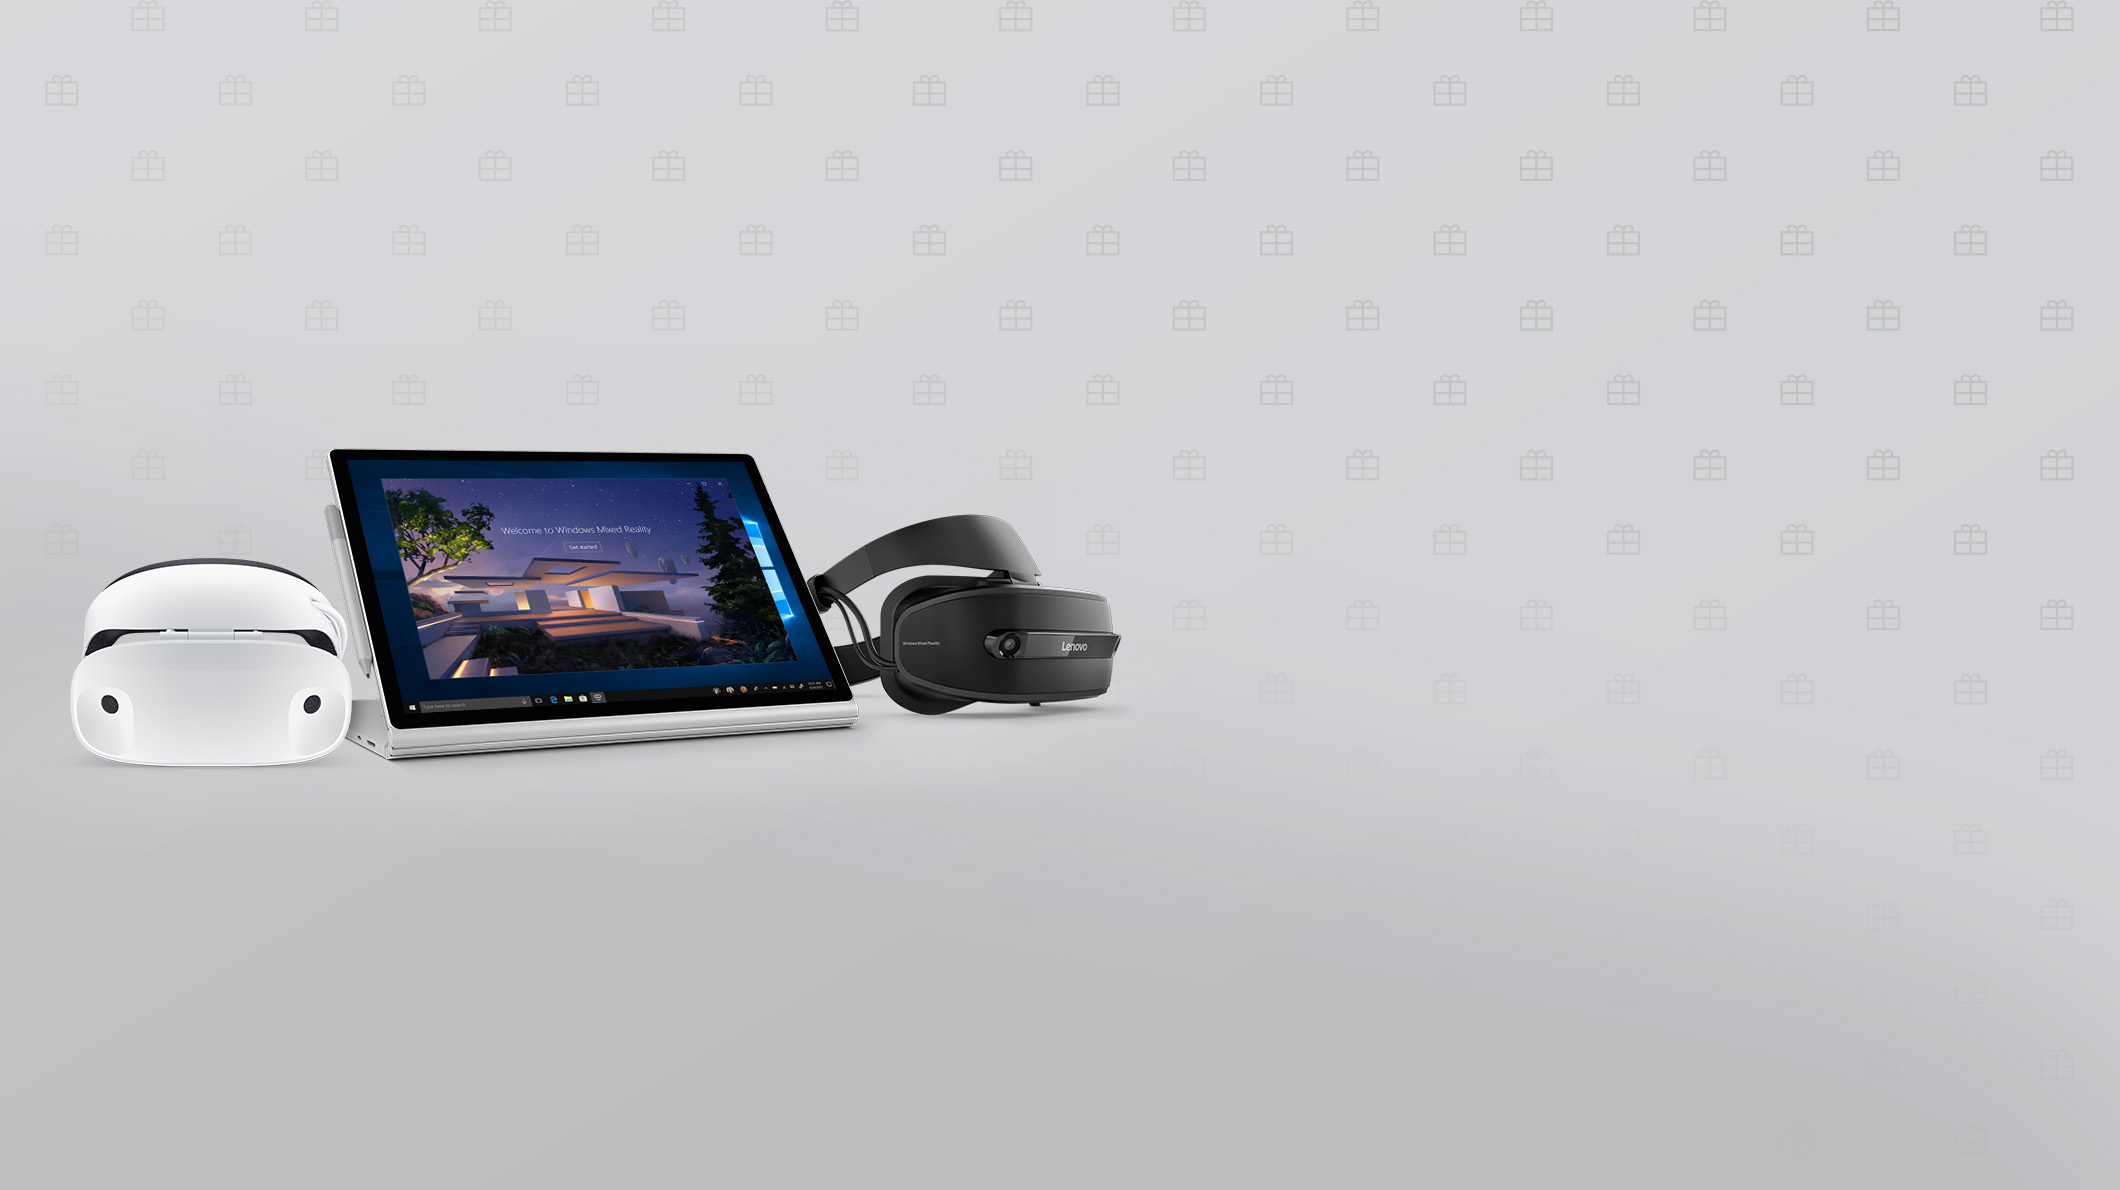 A Surface Book 2 and Windows Mixed Reality headsets